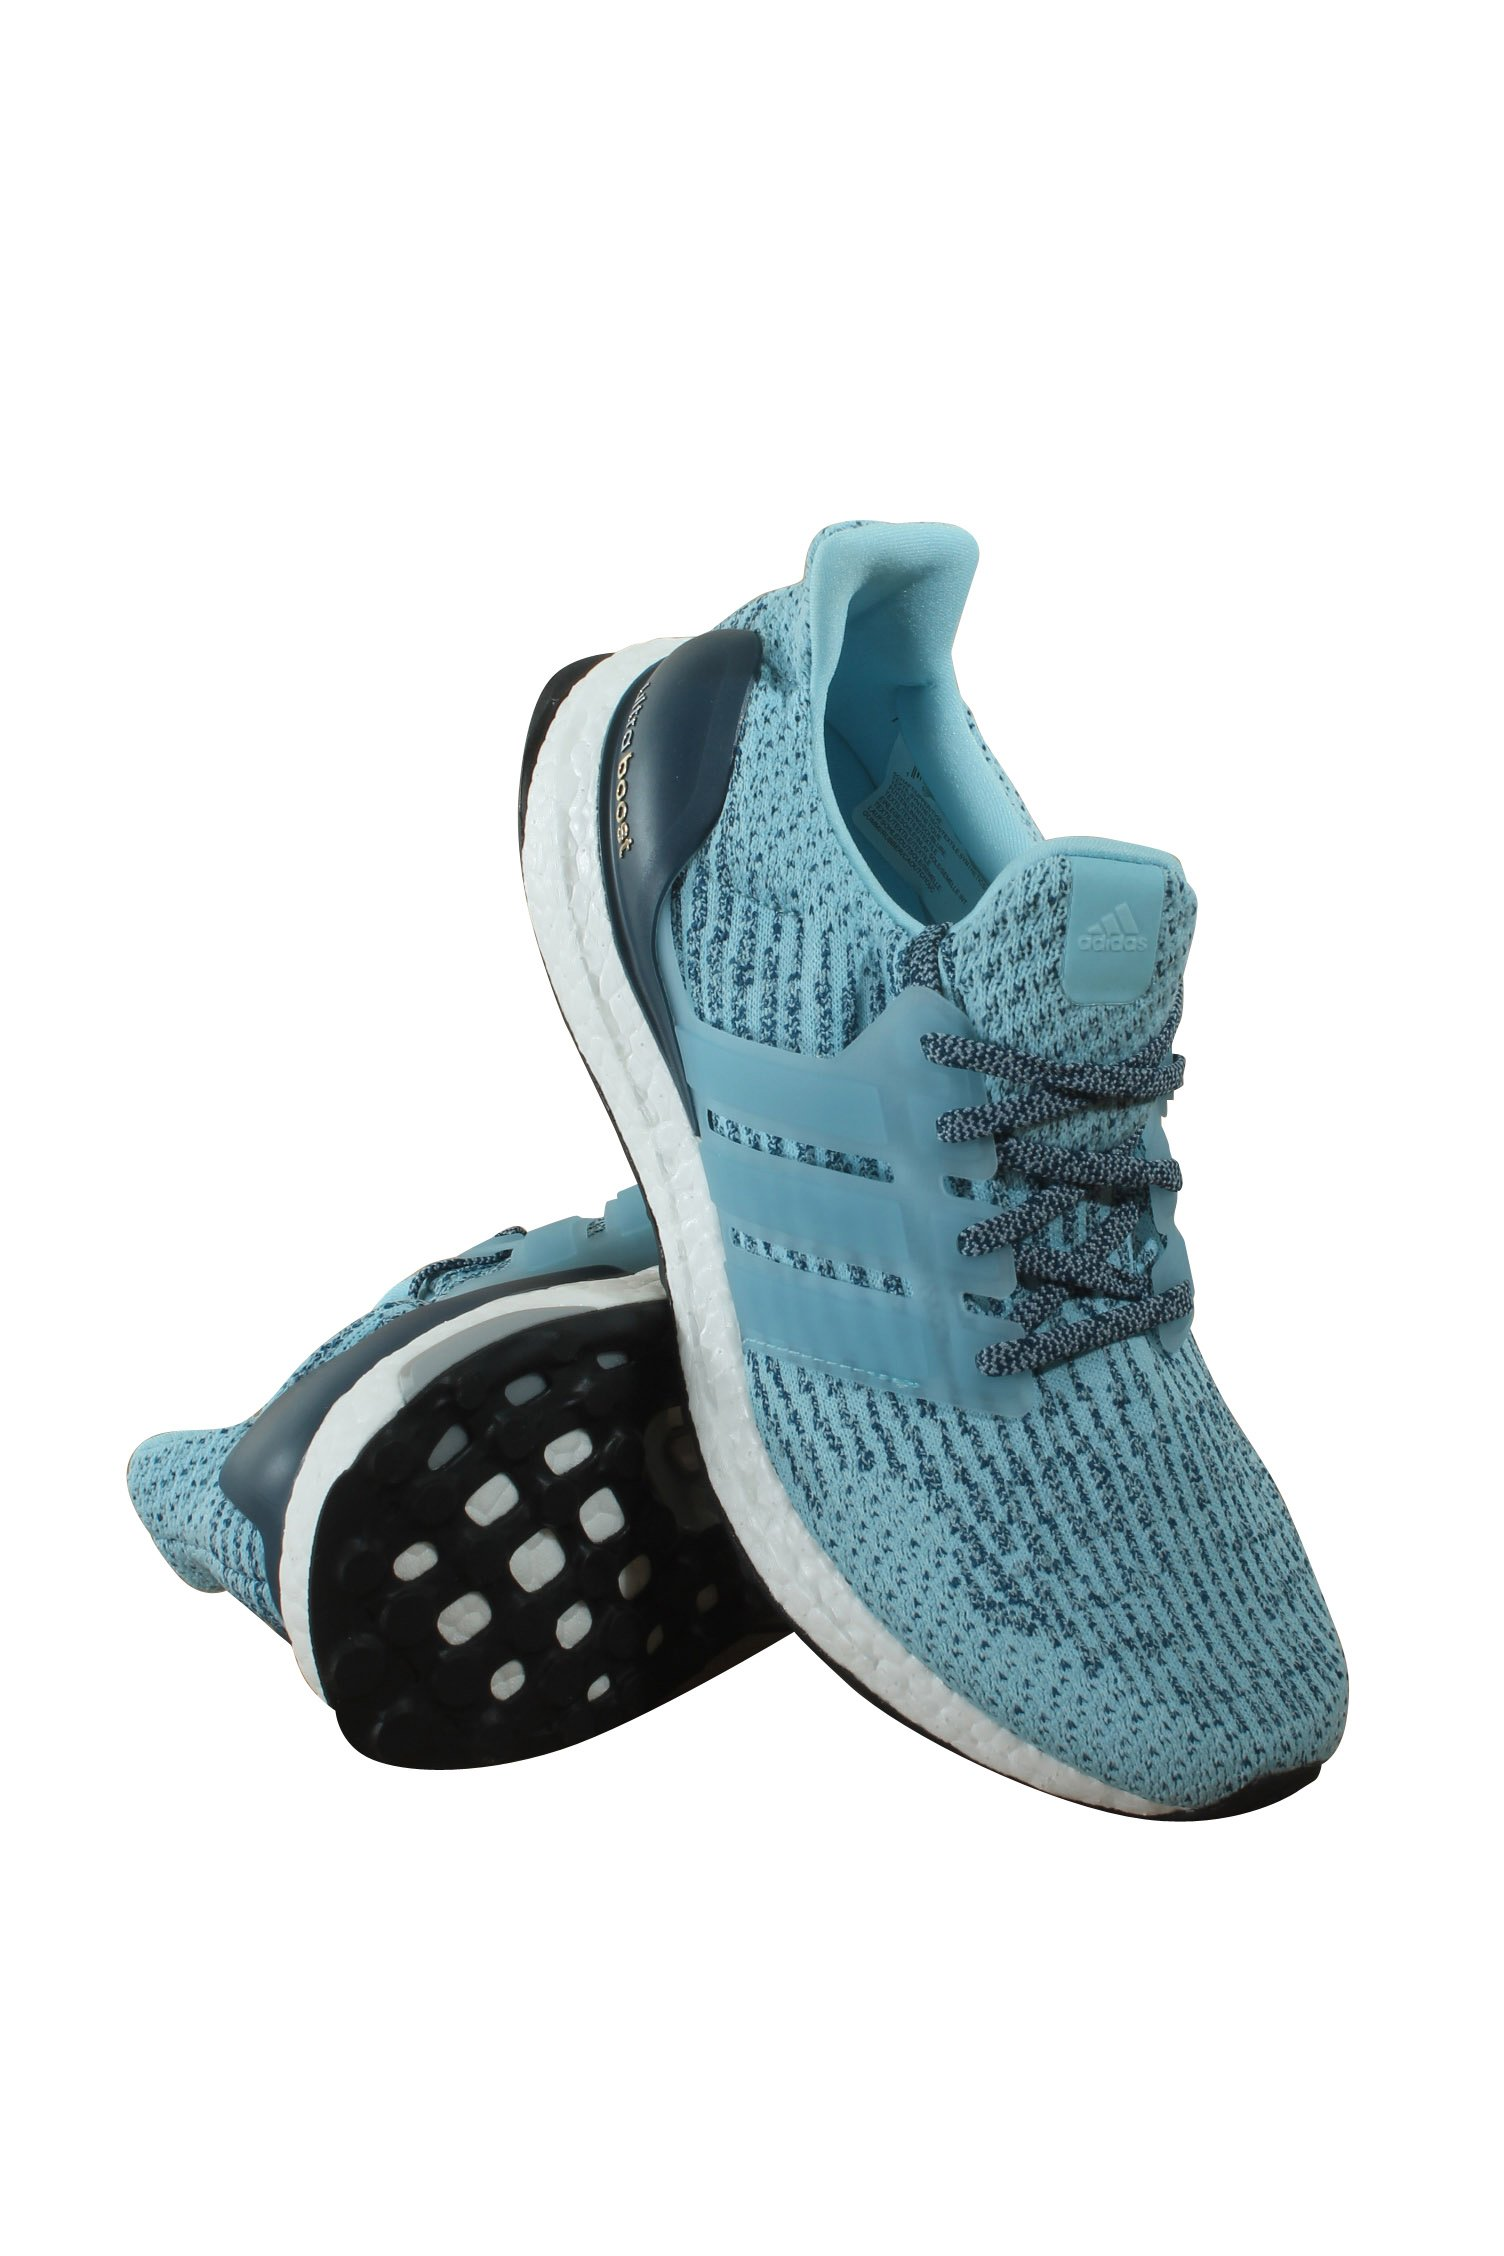 adidas Performance Women's Ultraboost w, Ice Blue/Ice Blue/Blue Night, 7.5 Medium US